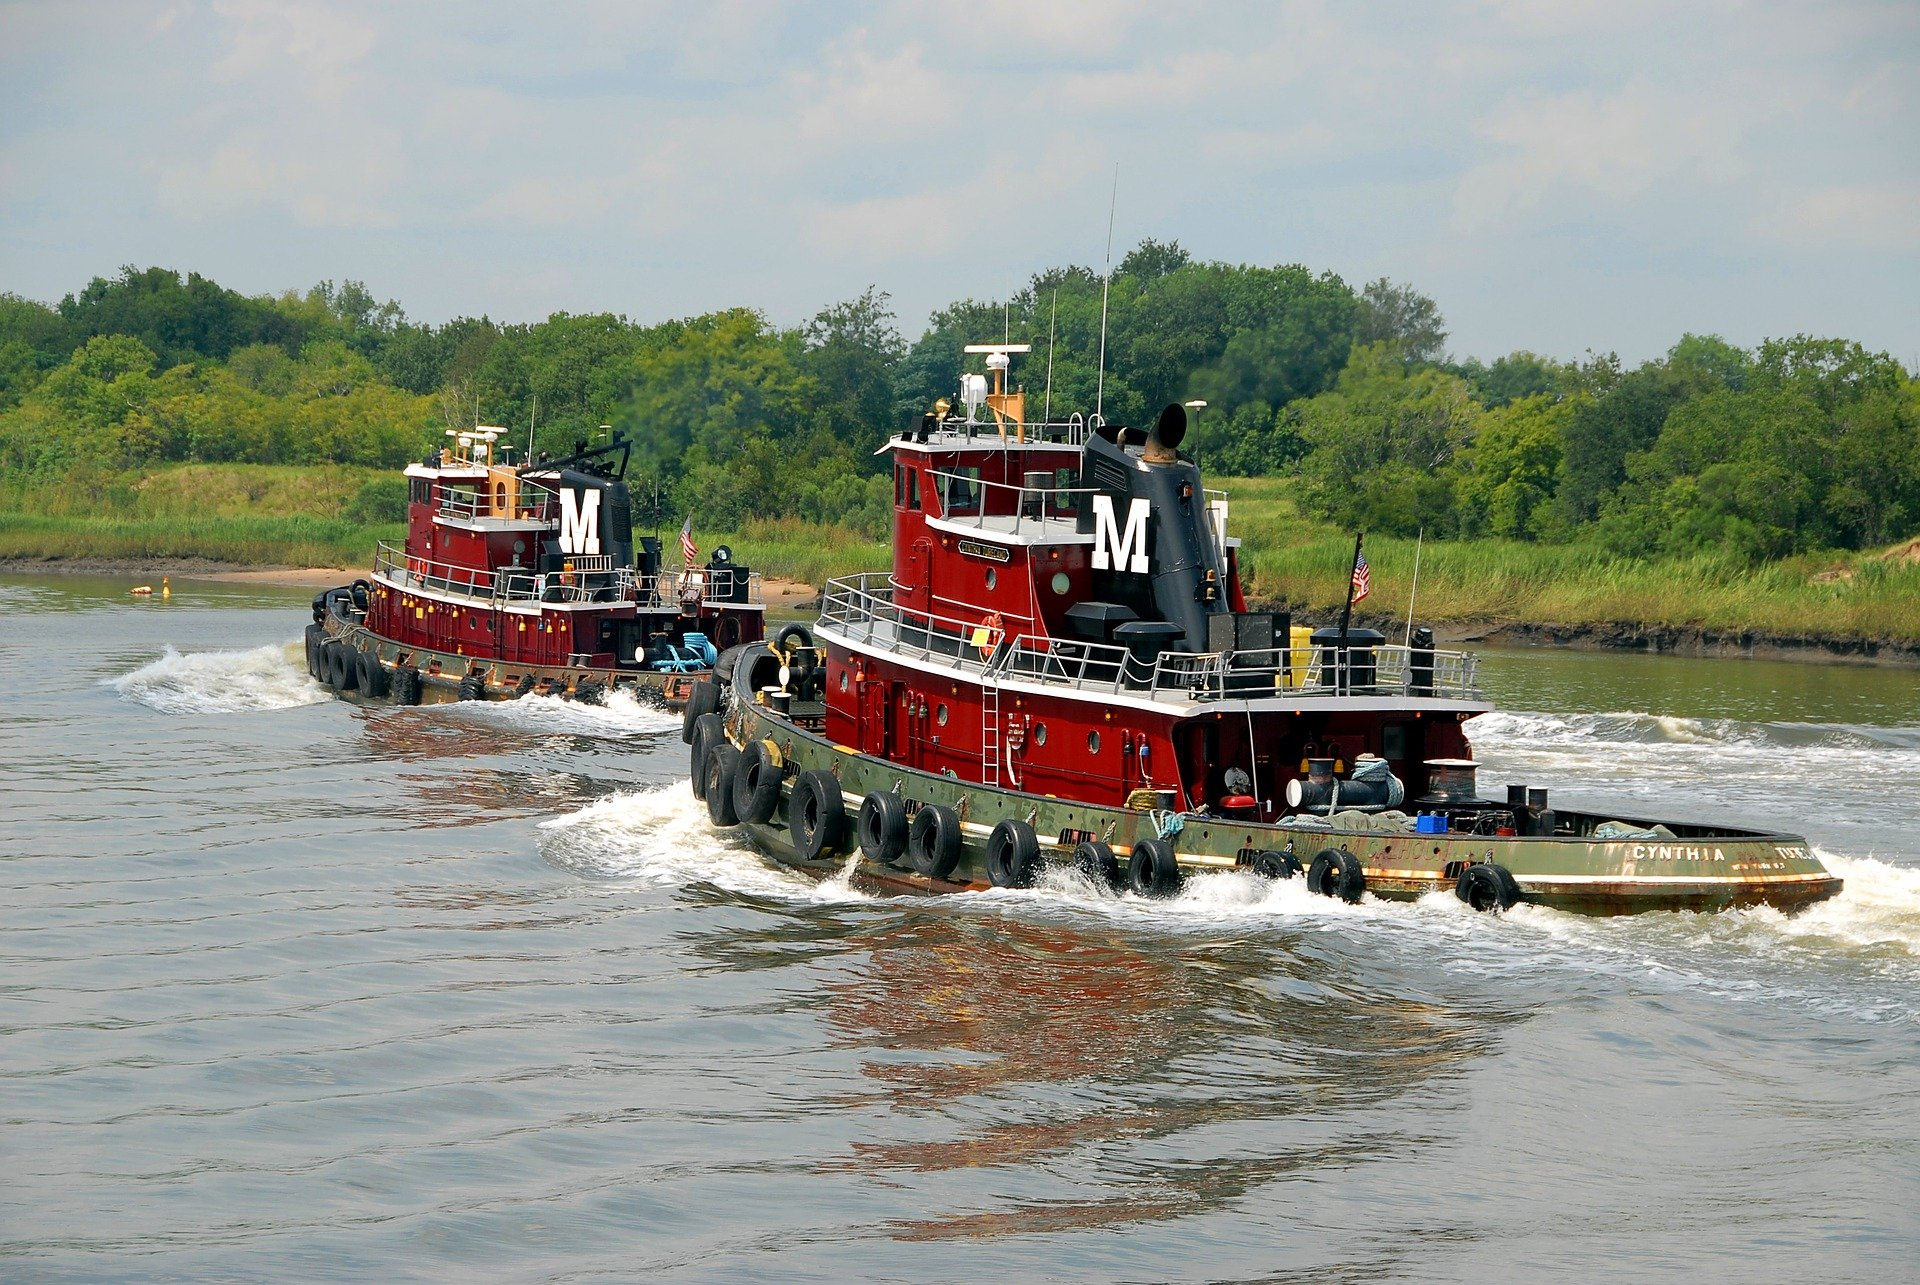 Tug Boats in Georgia - VeteranCarDonations.org